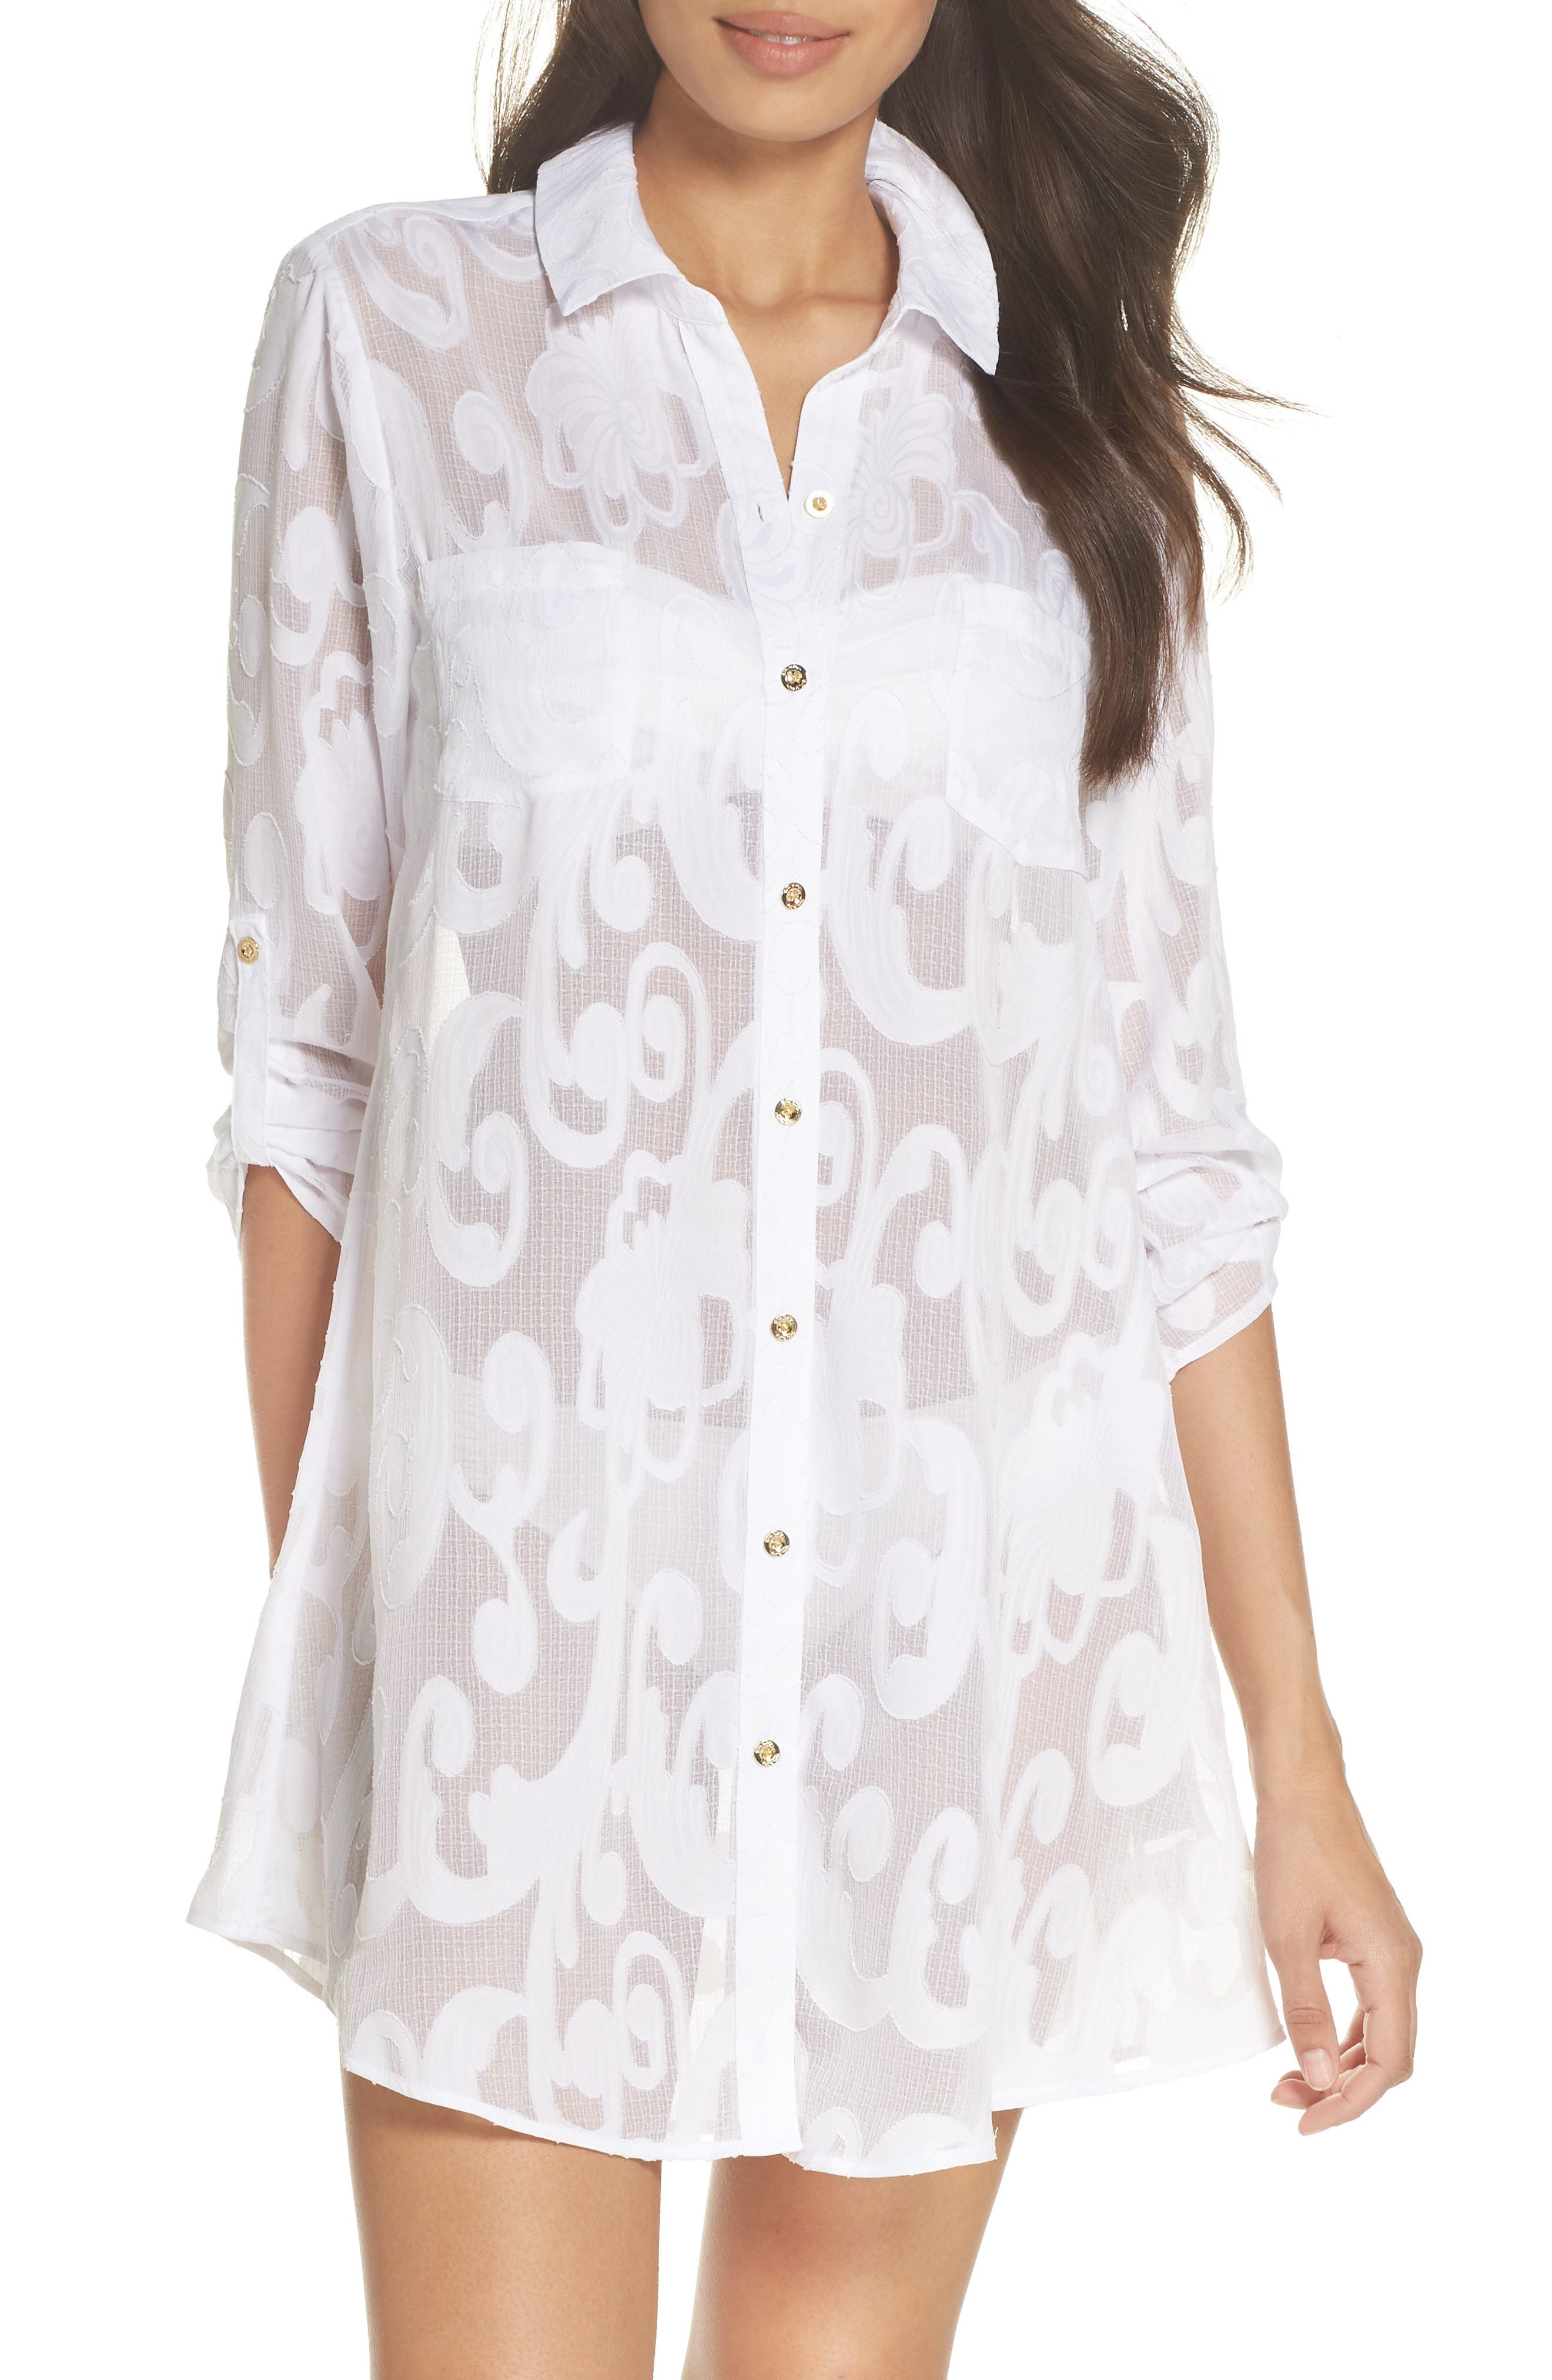 Natalie Shirtdress Cover-Up,                         Main,                         color, Resort White Poly Crepe Swirl